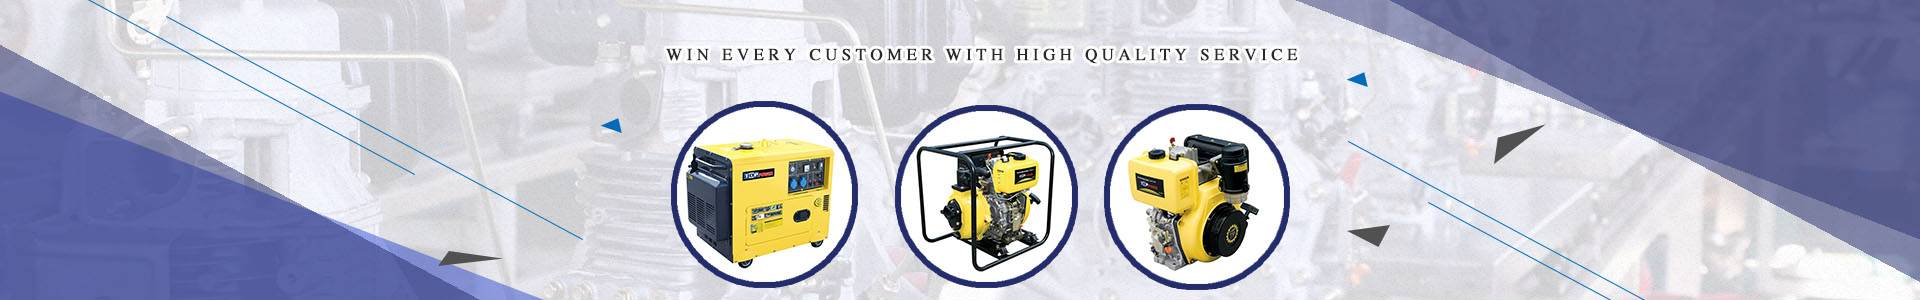 TOP Power Machinery